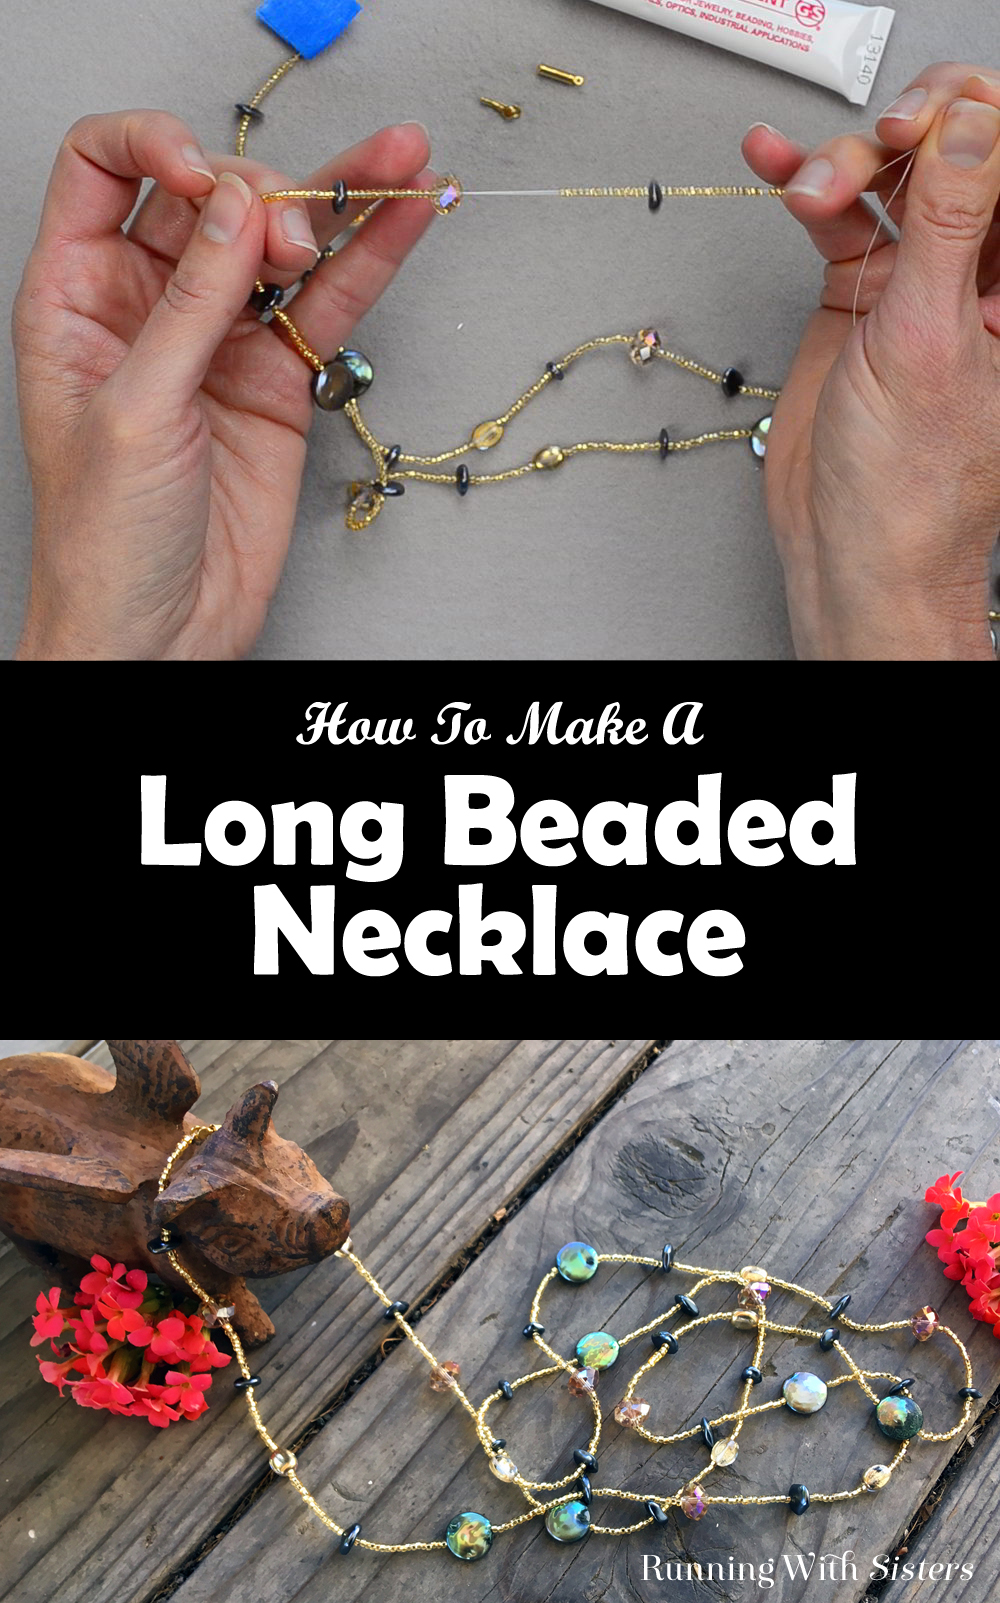 Learn to make a long beaded necklace with this easy to follow video tutorial. Learn how to feed on the beads and how to add the clasp. No tools needed!